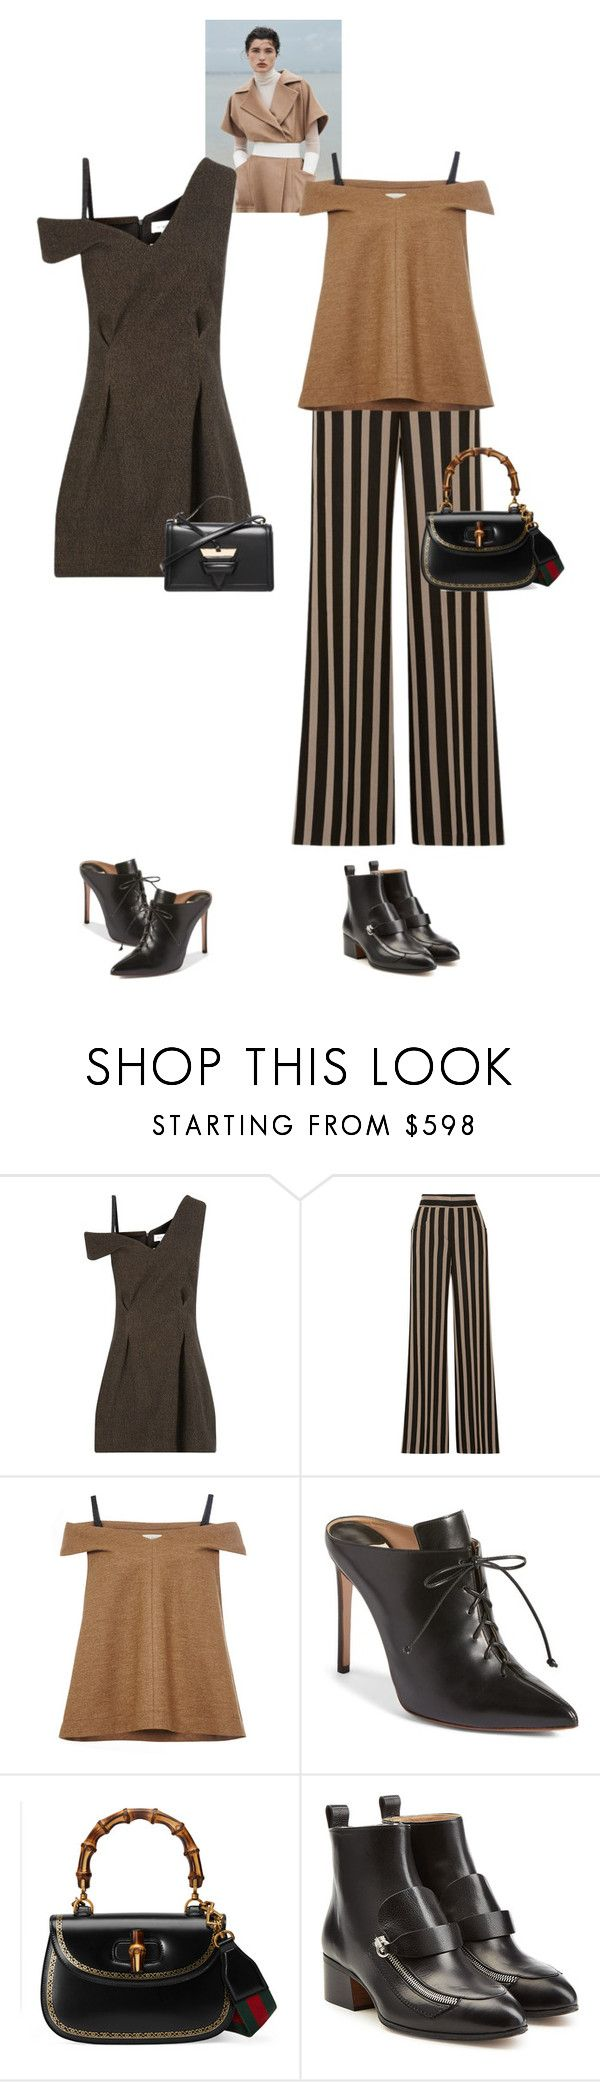 """Gwen & Peyton #8797"" by canlui ❤ liked on Polyvore featuring Ström, Isa Arfen, Etro, Francesco Russo, Gucci, Chloé and Loewe"